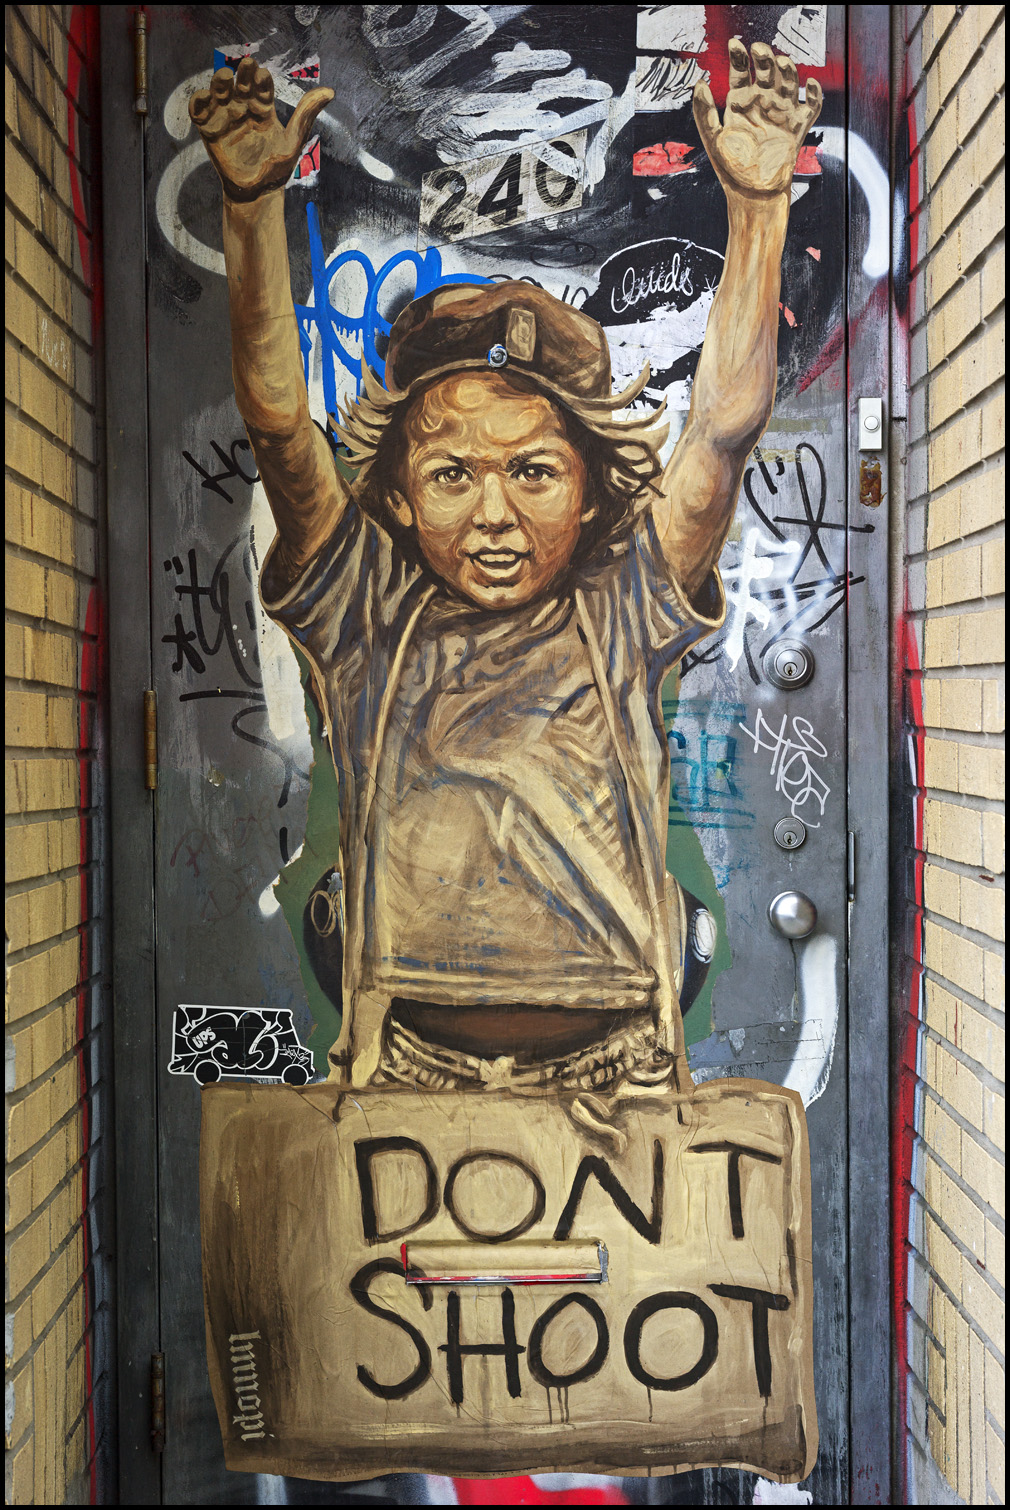 Graffiti in Brooklyn, New York in support of the Ferguson, Missouri protests. Photo by Damien Derouene on Flickr.